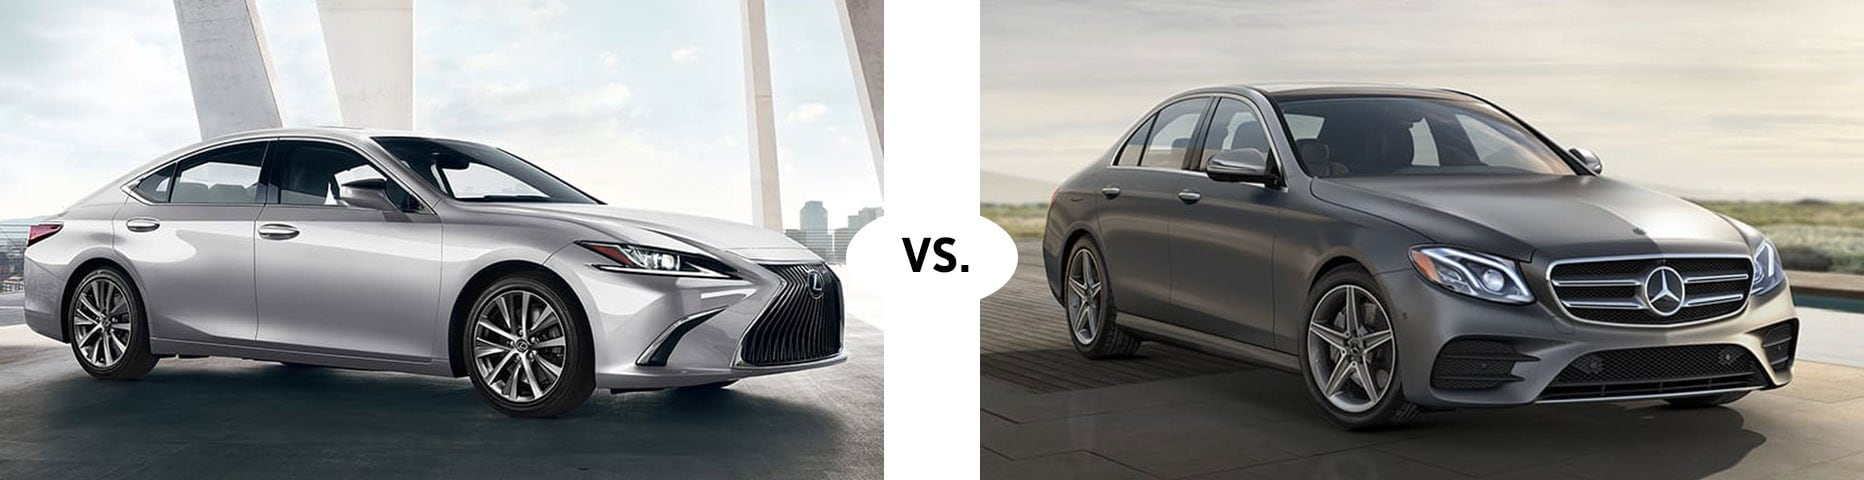 2020 LEXUS ES 350 VS. 2020 MERCEDES BENZ E350